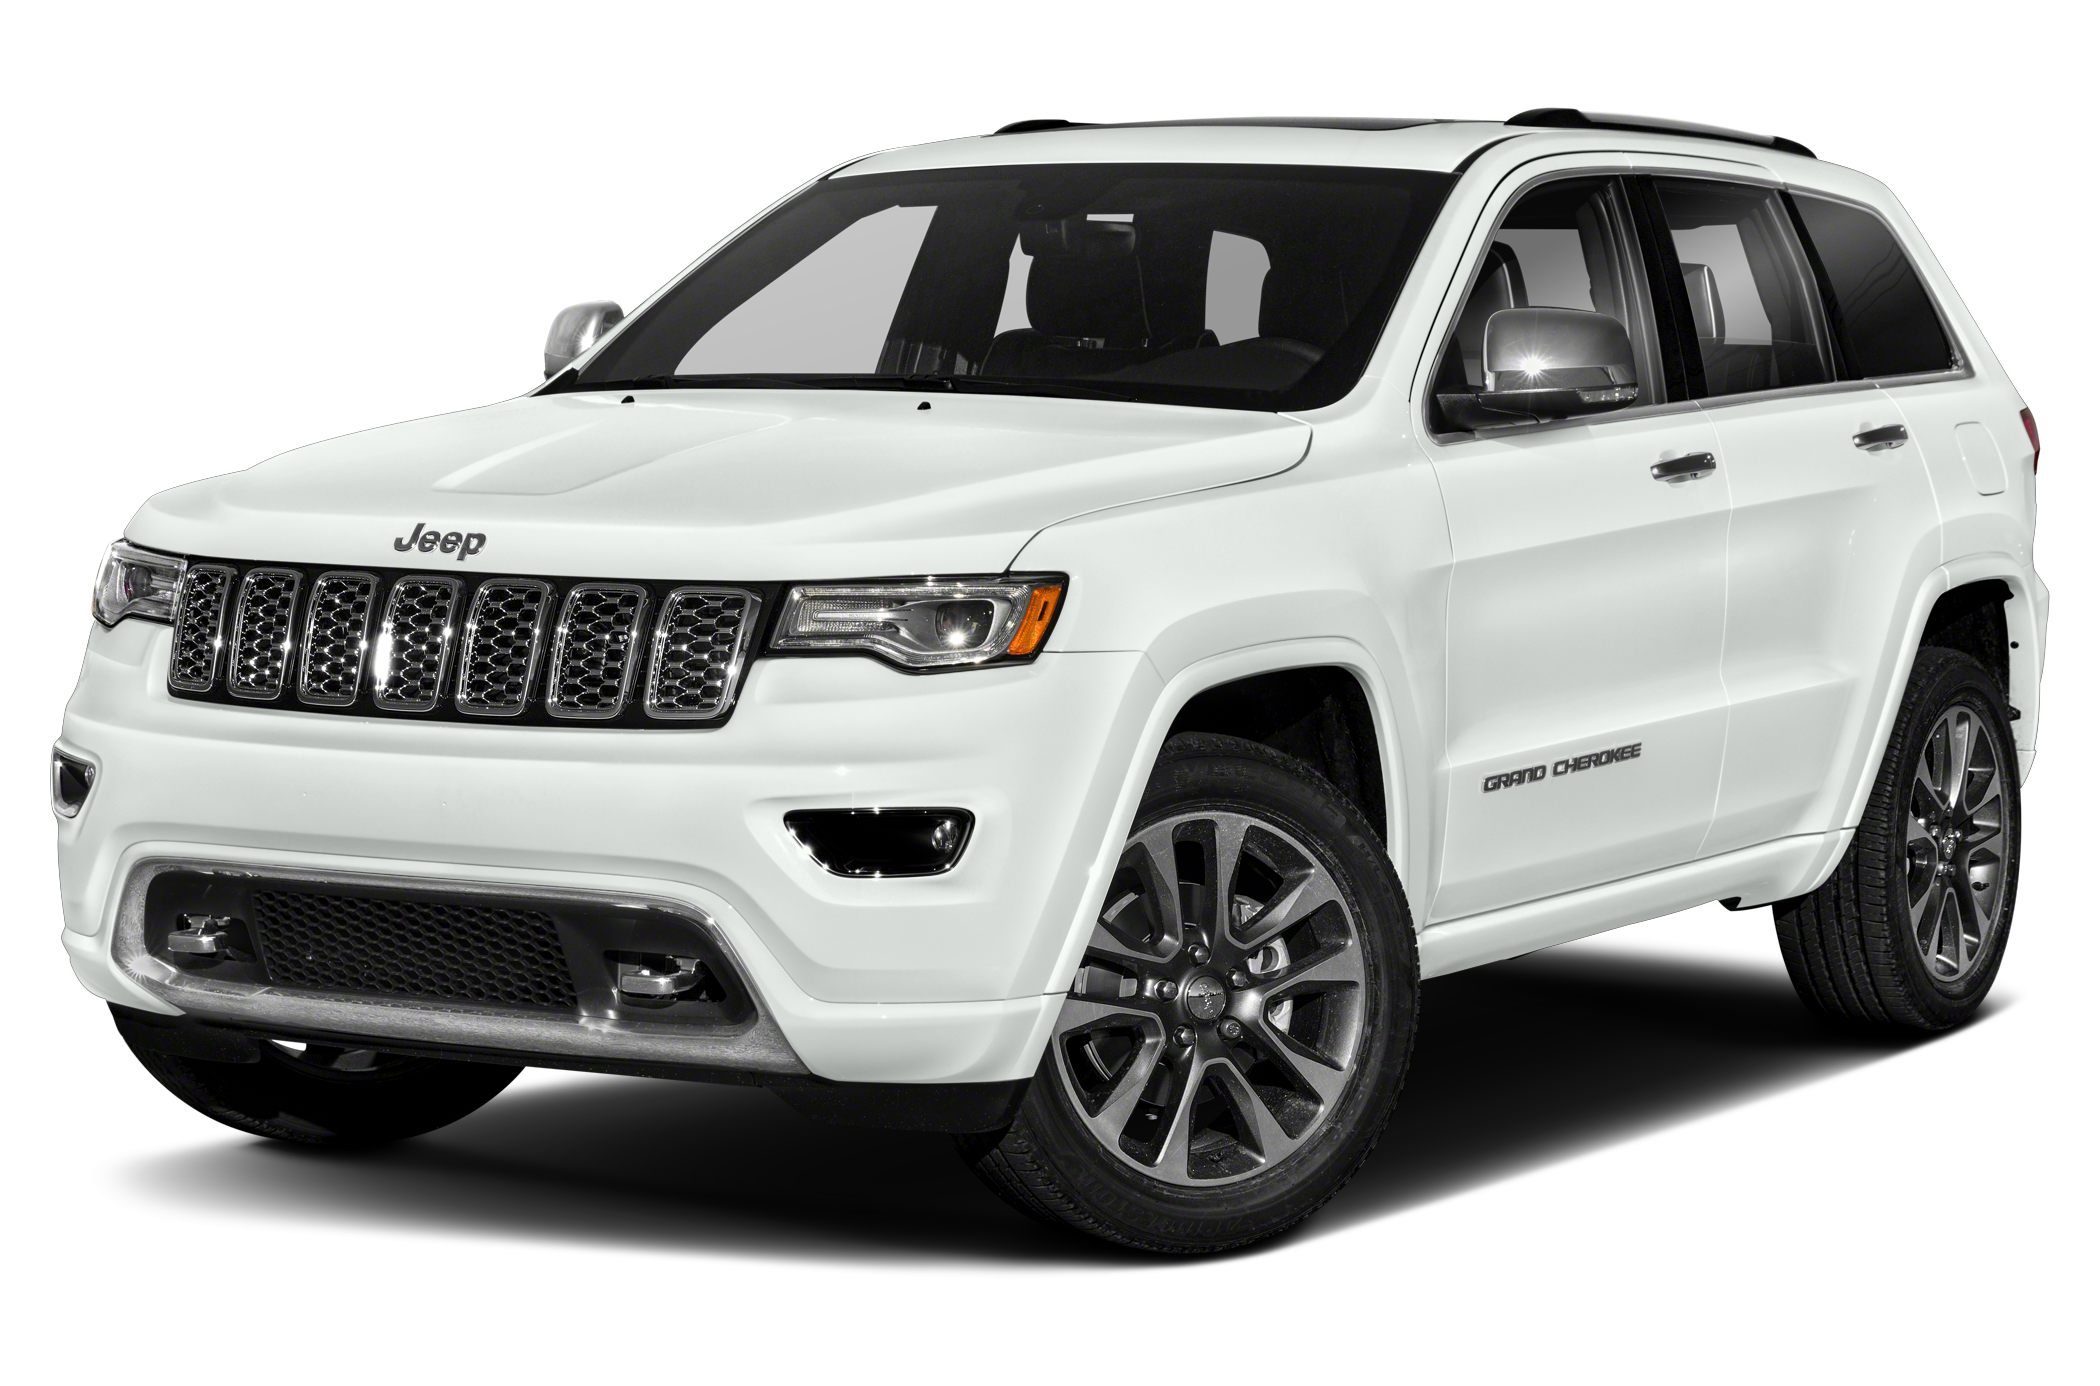 2017 Jeep Grand Cherokee Reviews, Specs and Prices | Cars.com